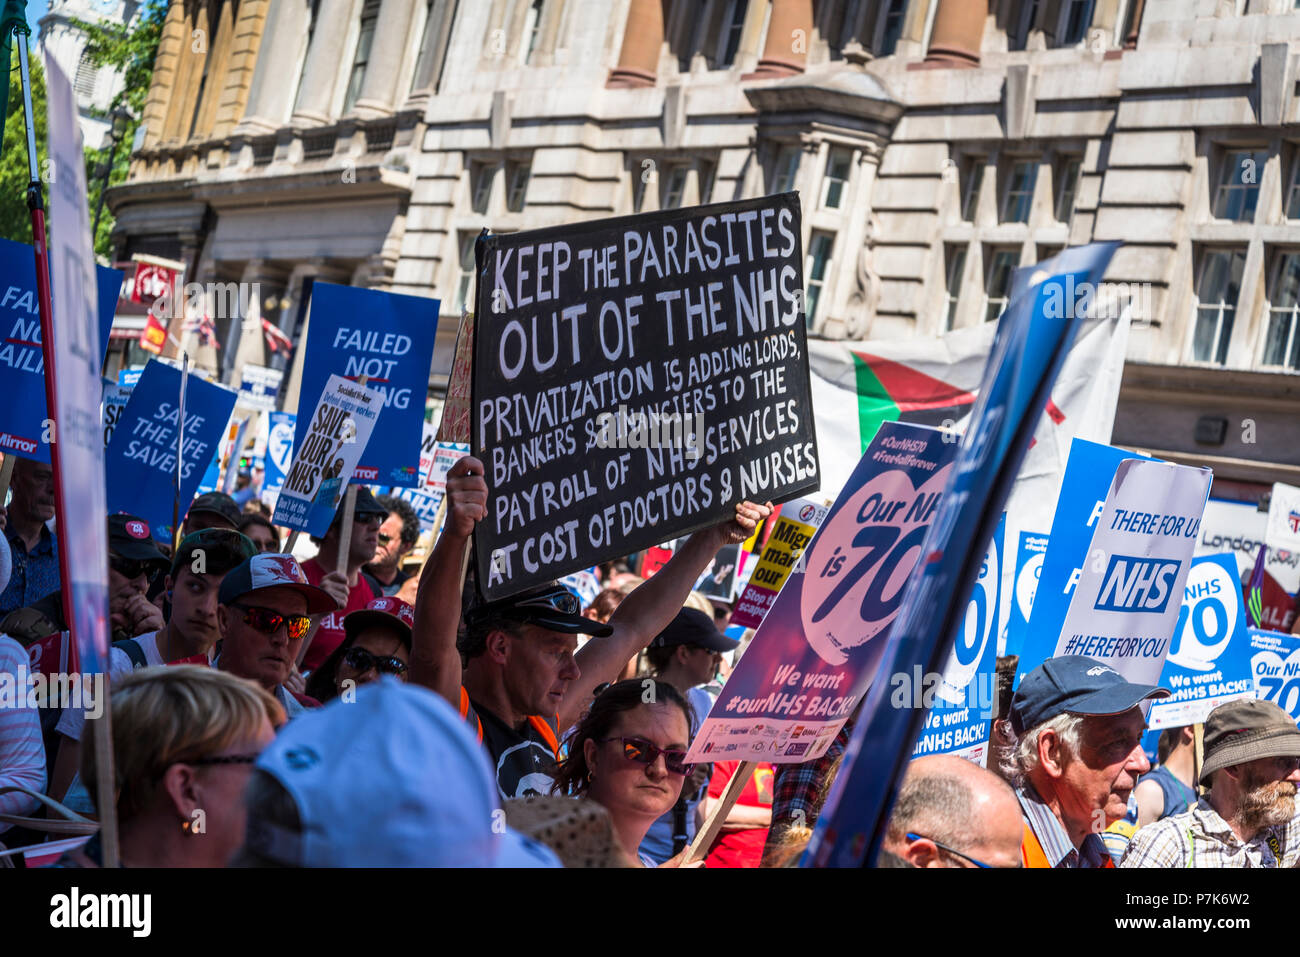 NHS 70th Anniversary March organised by People's Assembly, Poster agains privatisation of health, London, UK, 30/06/2018 - Stock Image